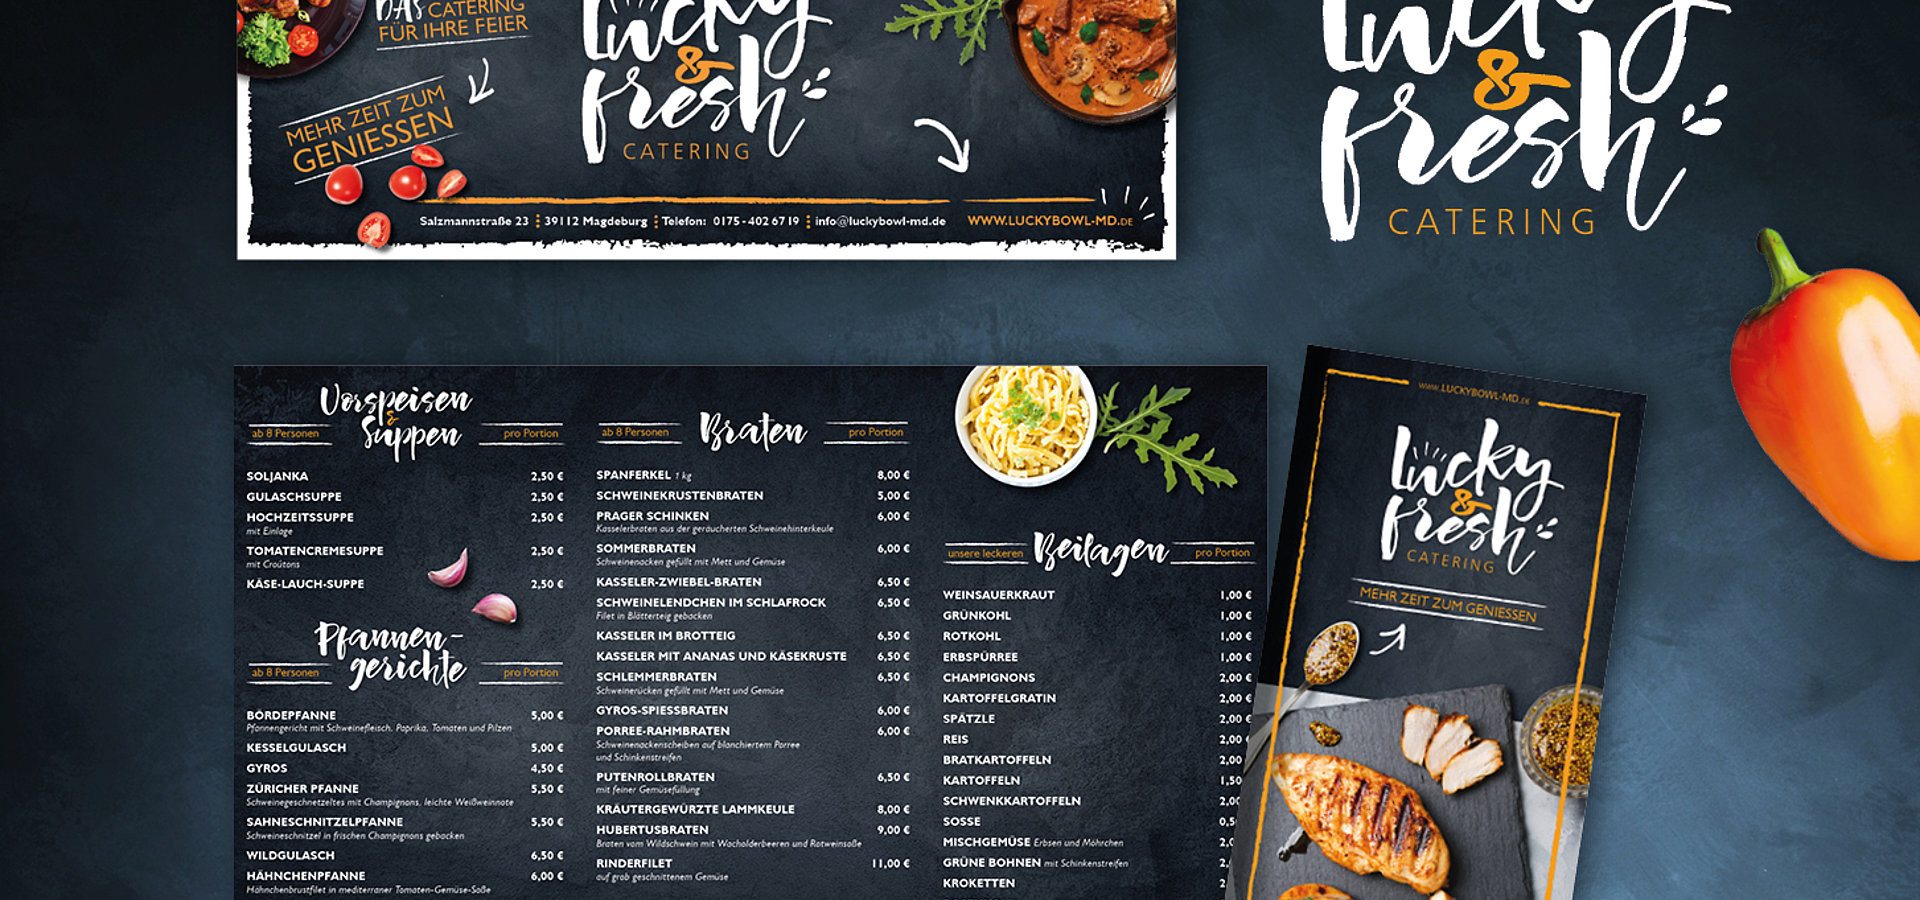 Grafikdesign: Corporate Design, Banner und Flyer für Lucky & Fresh Catering